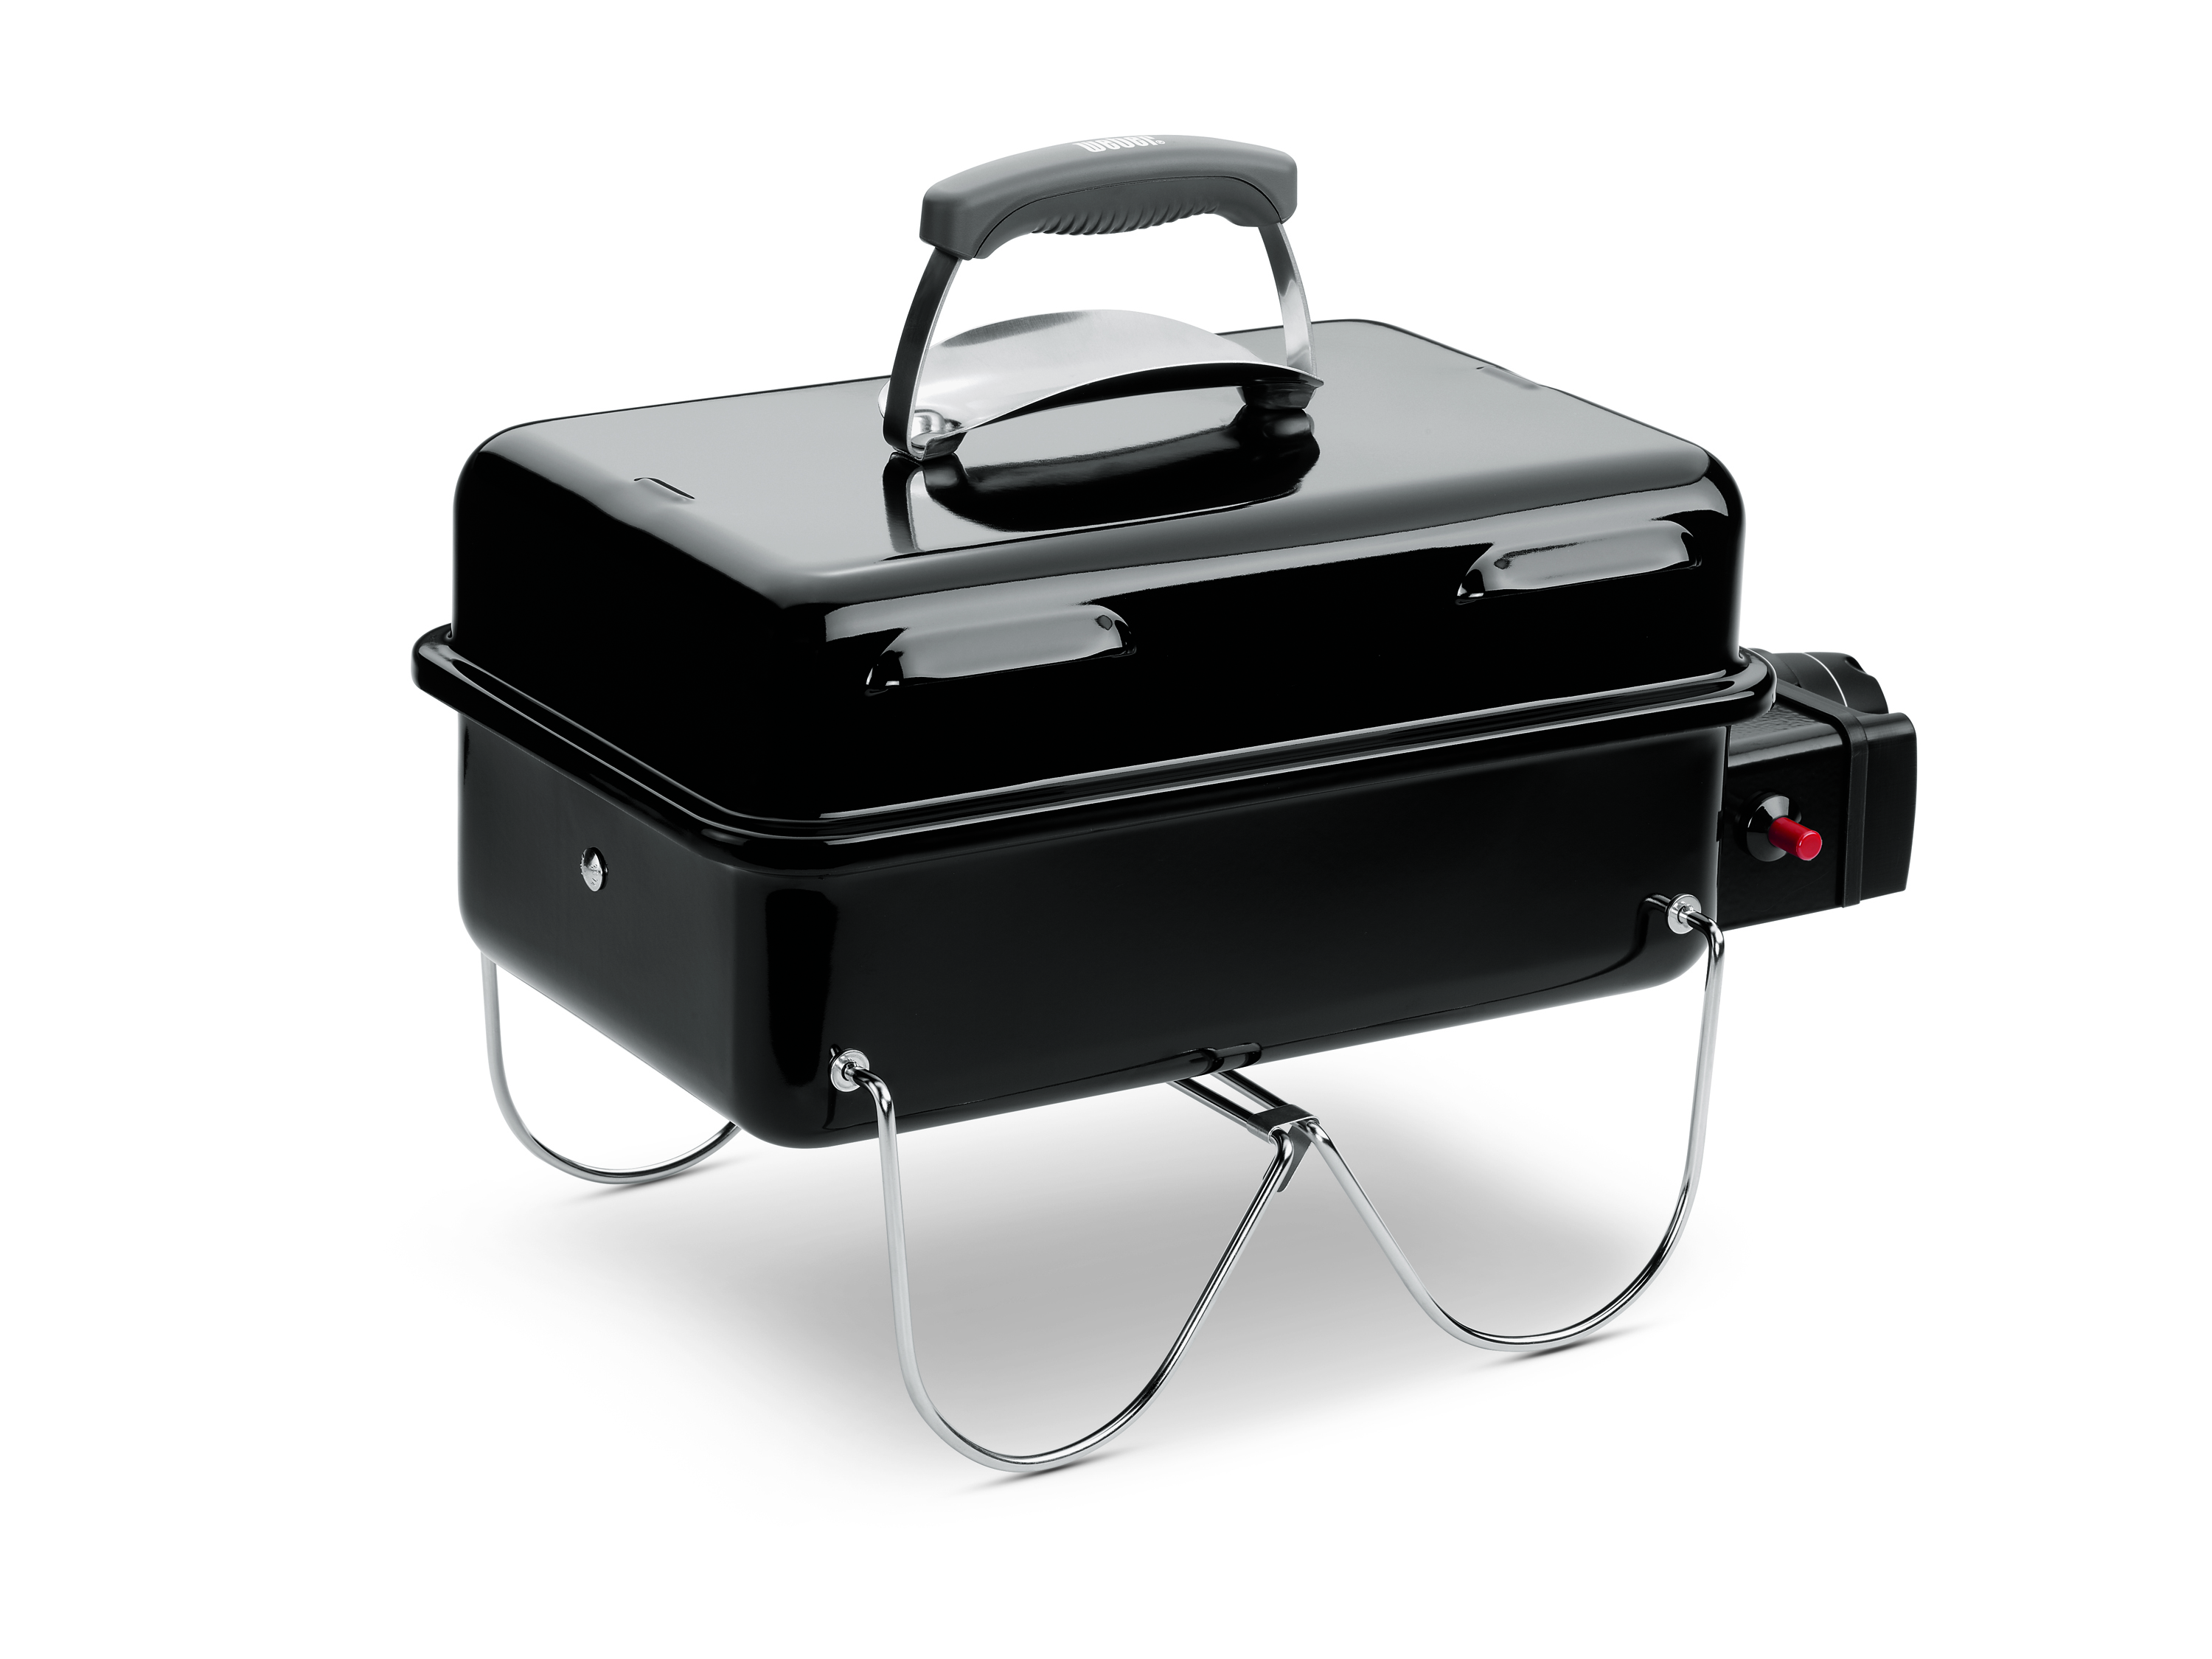 Weber Elektrogrill Grillrost Reinigen : Weber go anywhere gas black go anywhere gasgrill grills